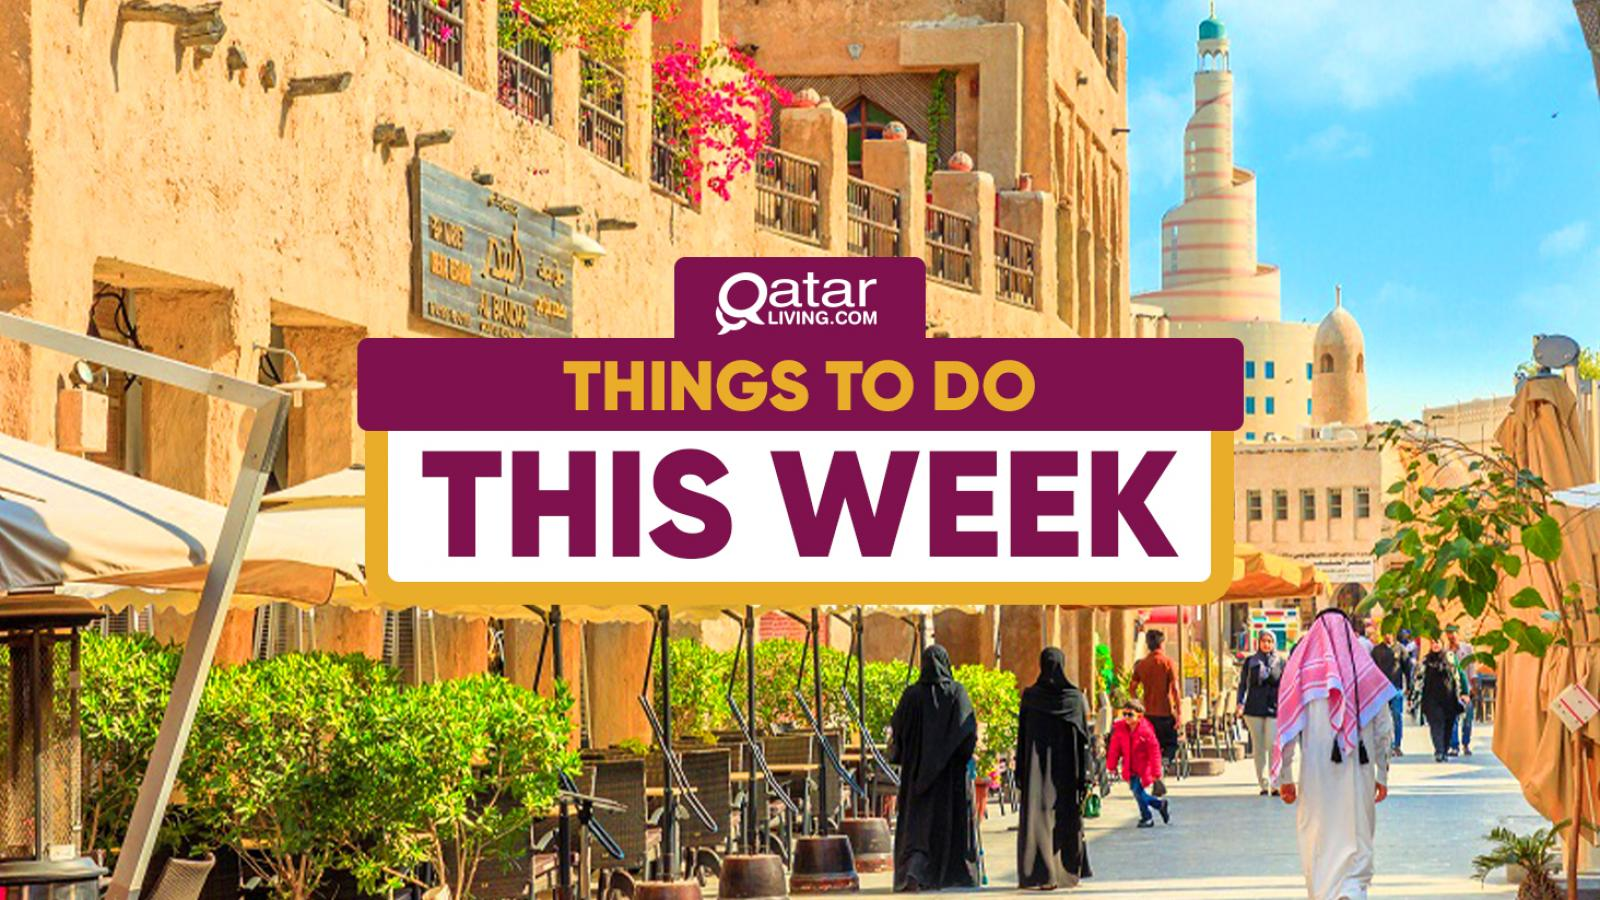 Five things to do in Qatar this week: August 30 to September 5